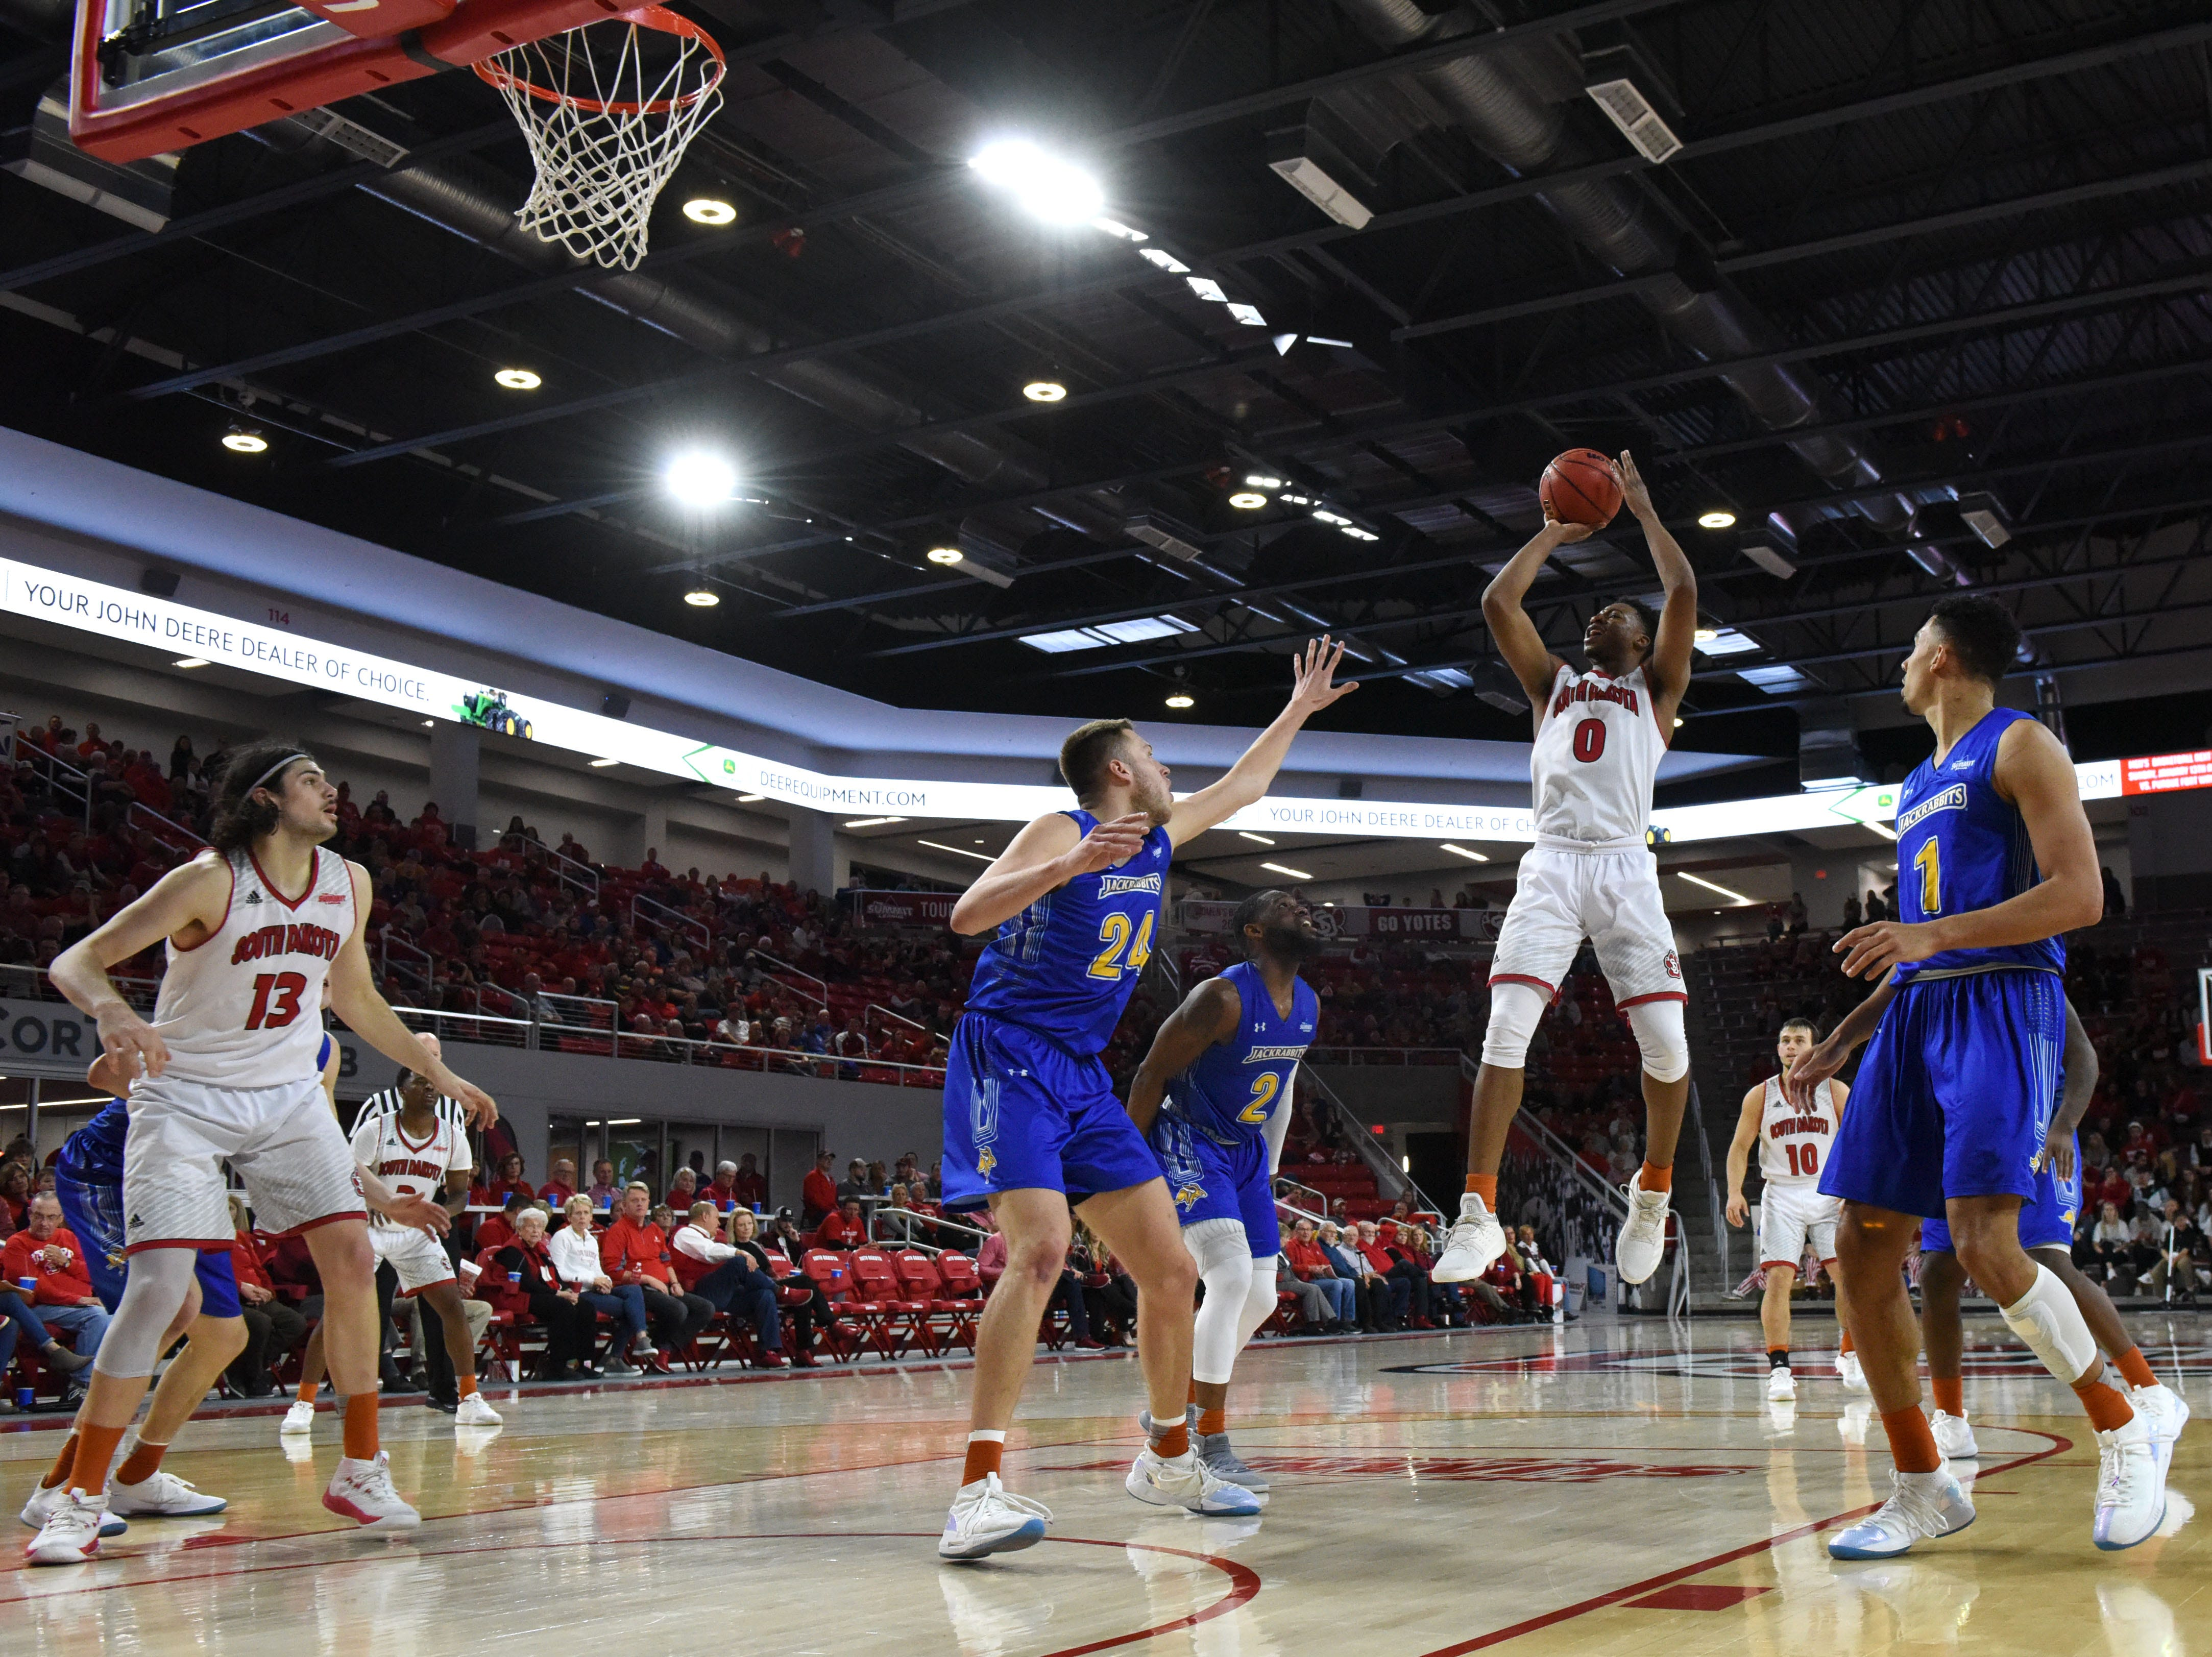 USD's Stanley Umude (0) shoots the ball during a game against SDSU, Sunday, Jan. 6, 2019 in Vermillion, S.D.